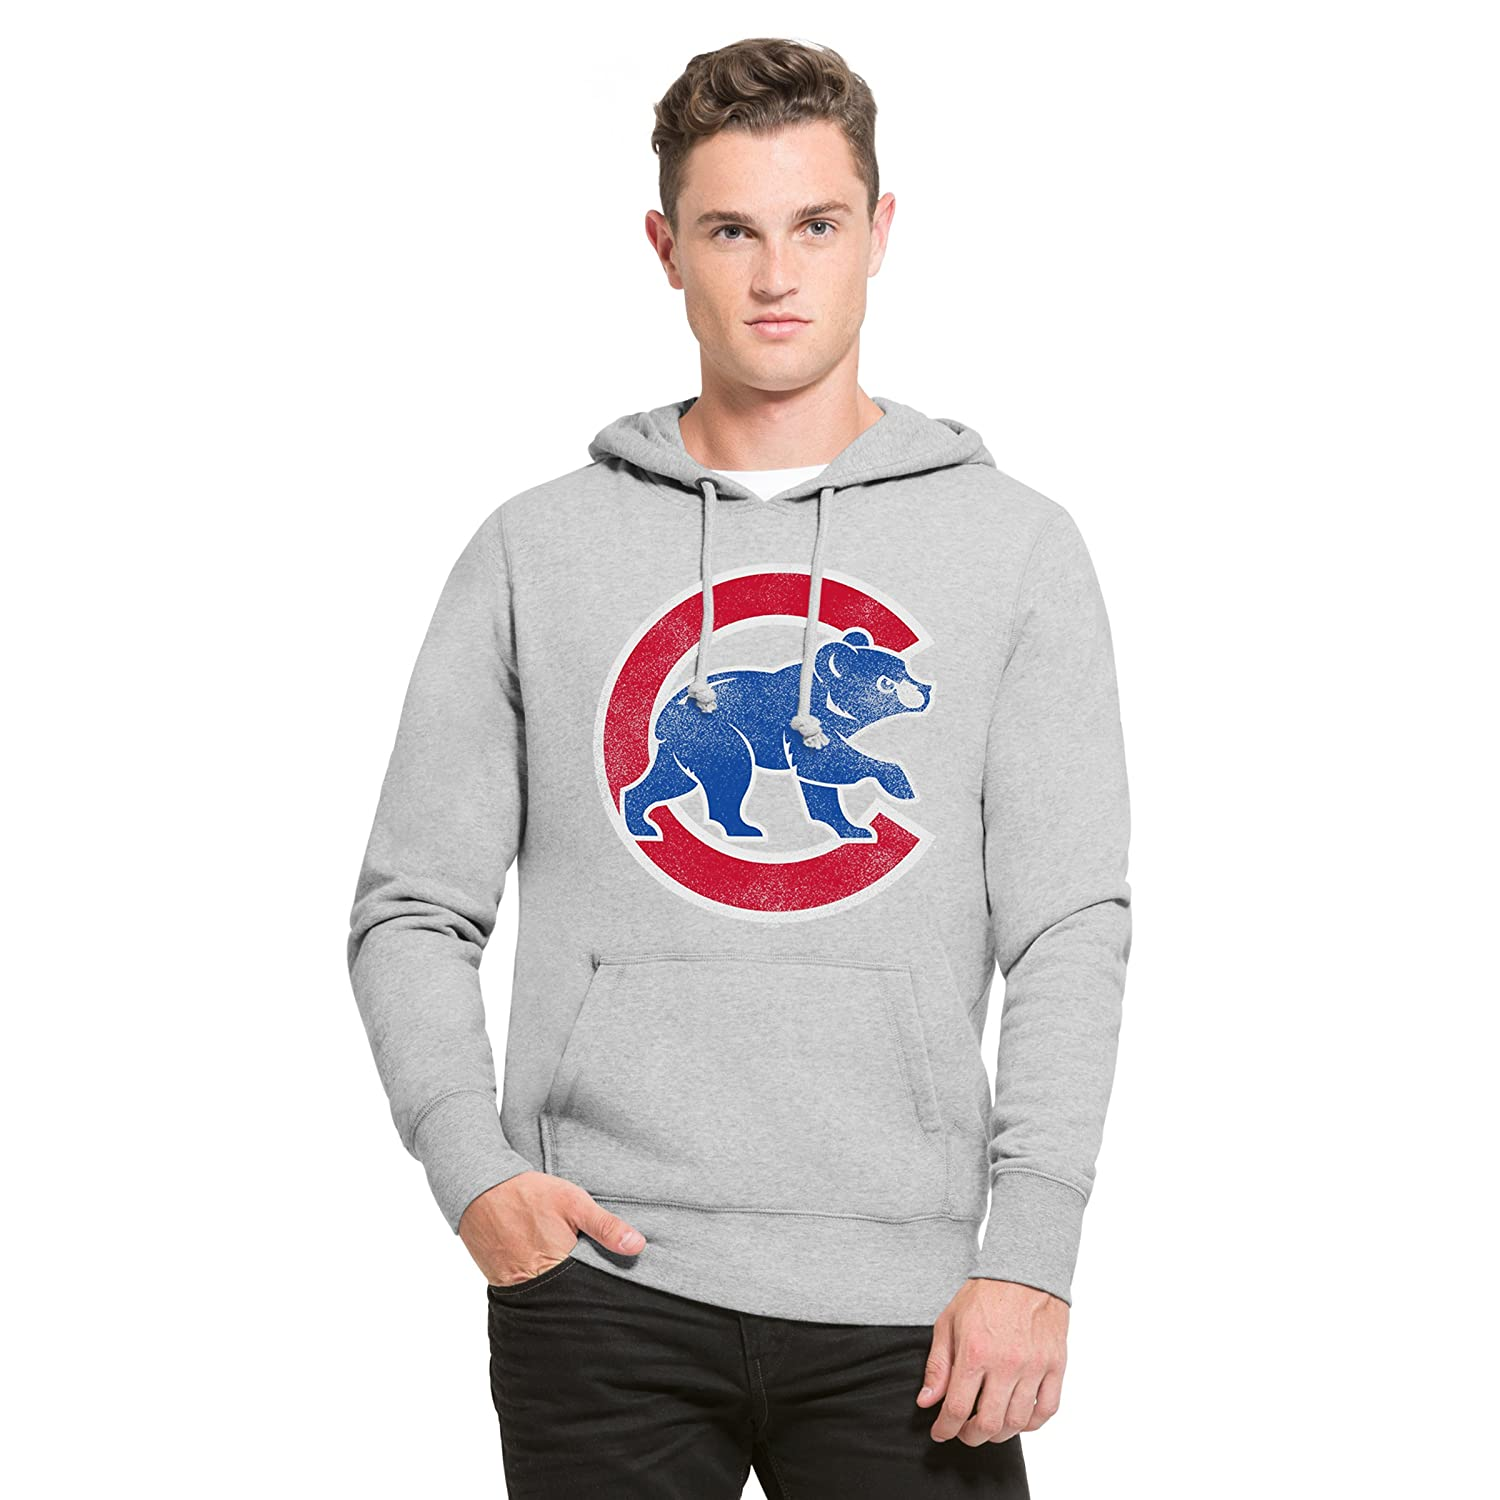 '47 Brand Chicago Cubs Knockaround Hoodie MLB Sweatshirt Grey